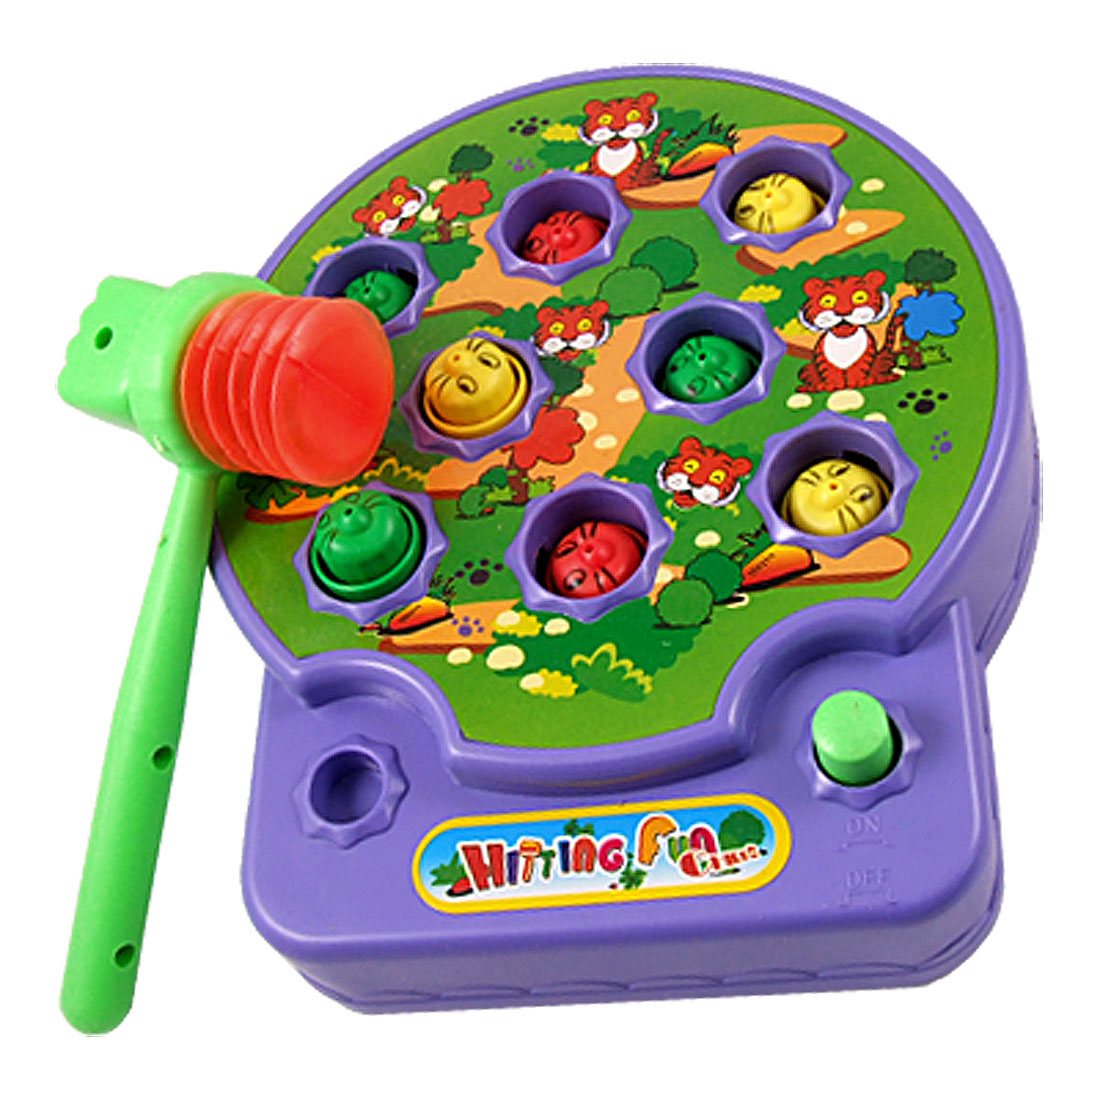 Electronic Music Sound Whack A Mouse Game Toy Purple for Children